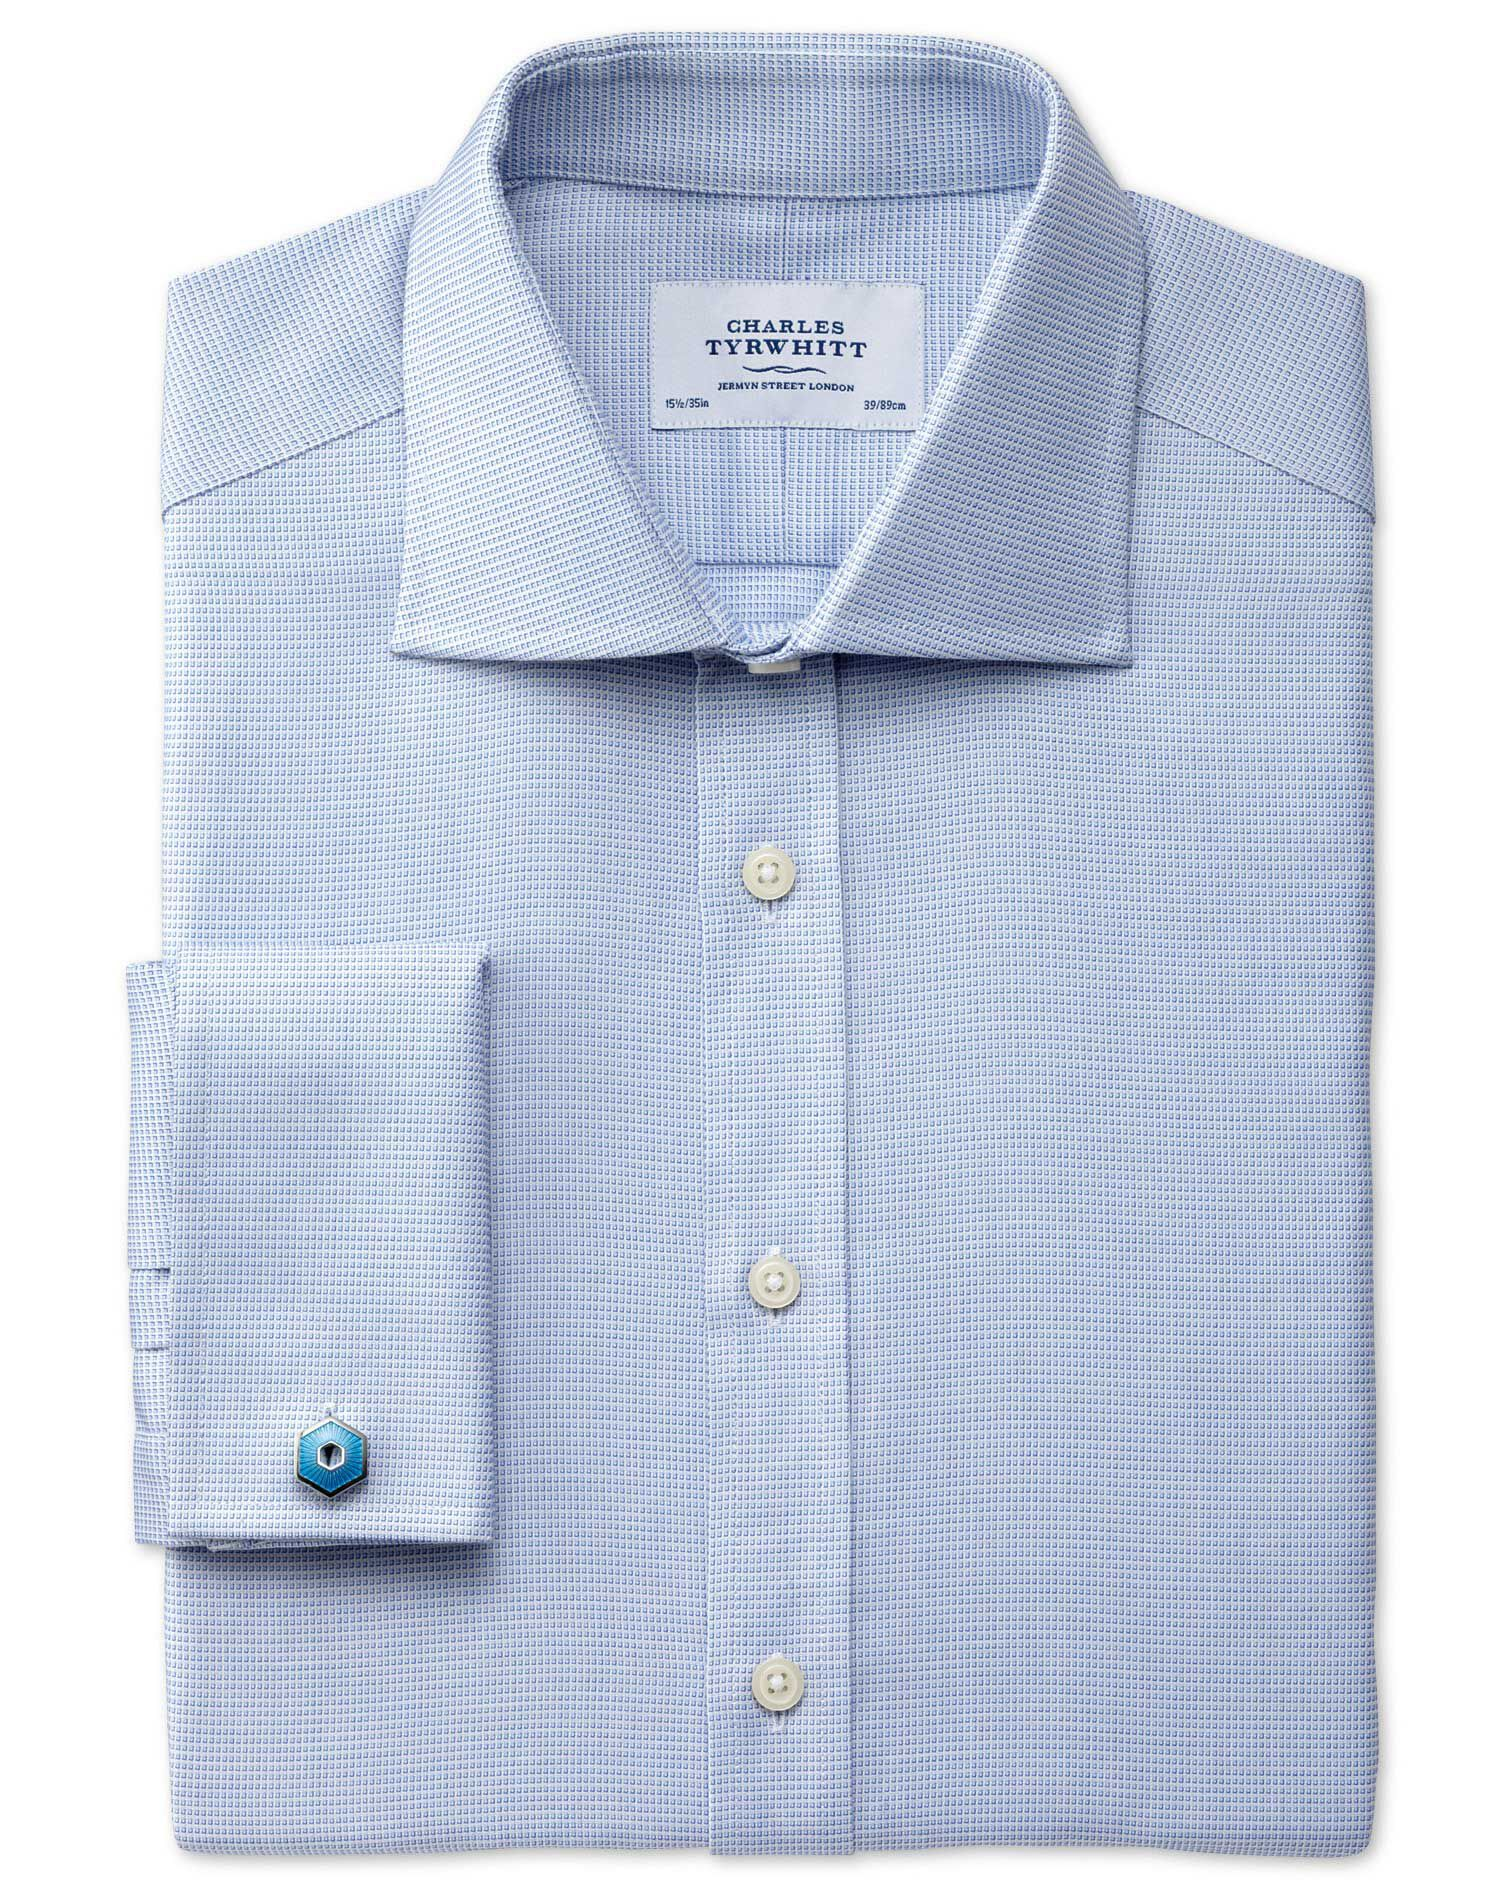 Extra Slim Fit Semi-Cutaway Collar Regency Weave Sky Blue Egyptian Cotton Formal Shirt Double Cuff S